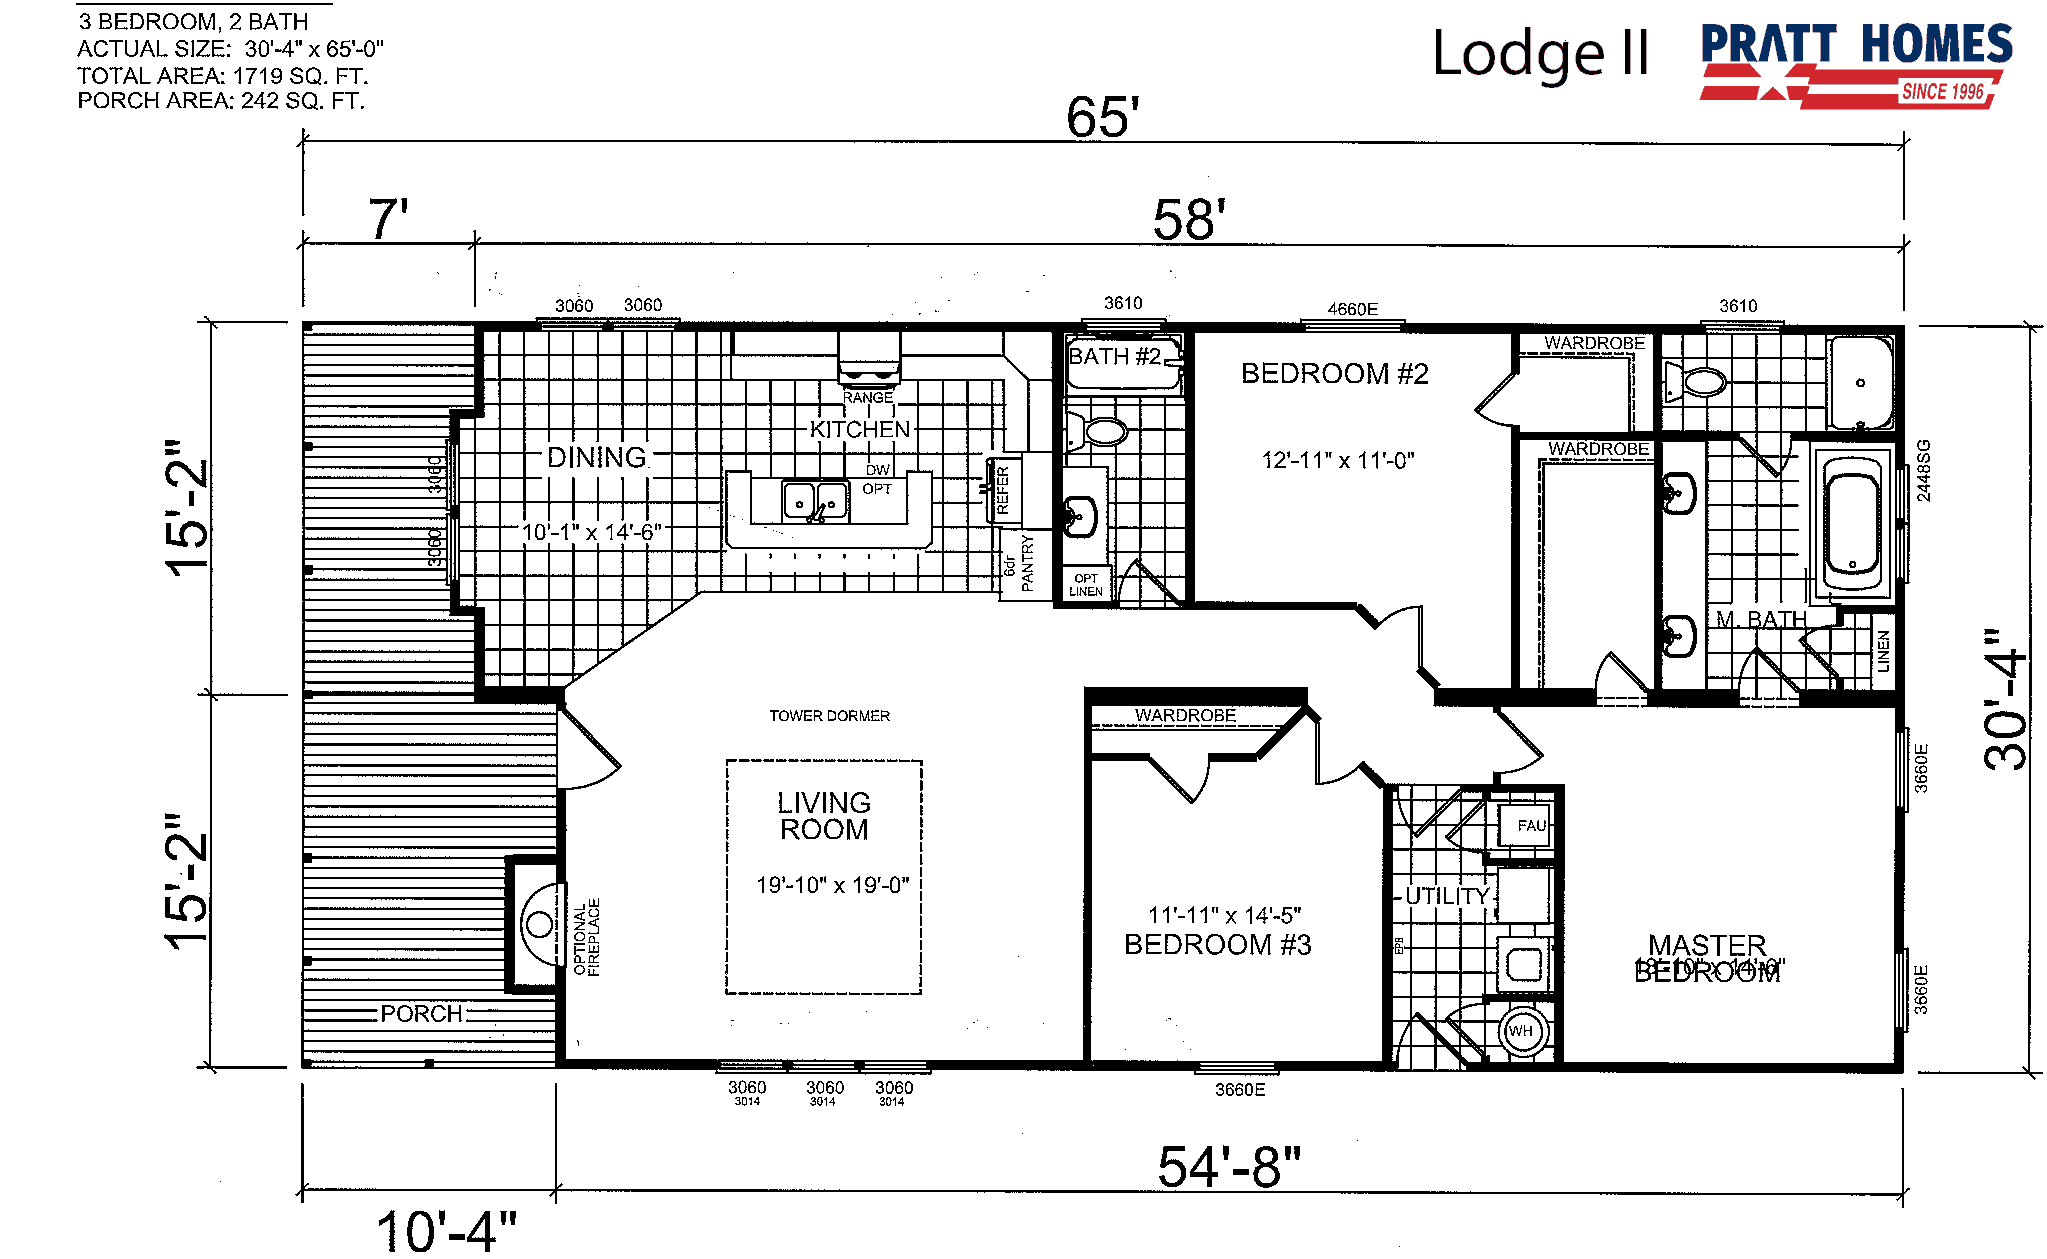 Floor Plan for house model Lodge